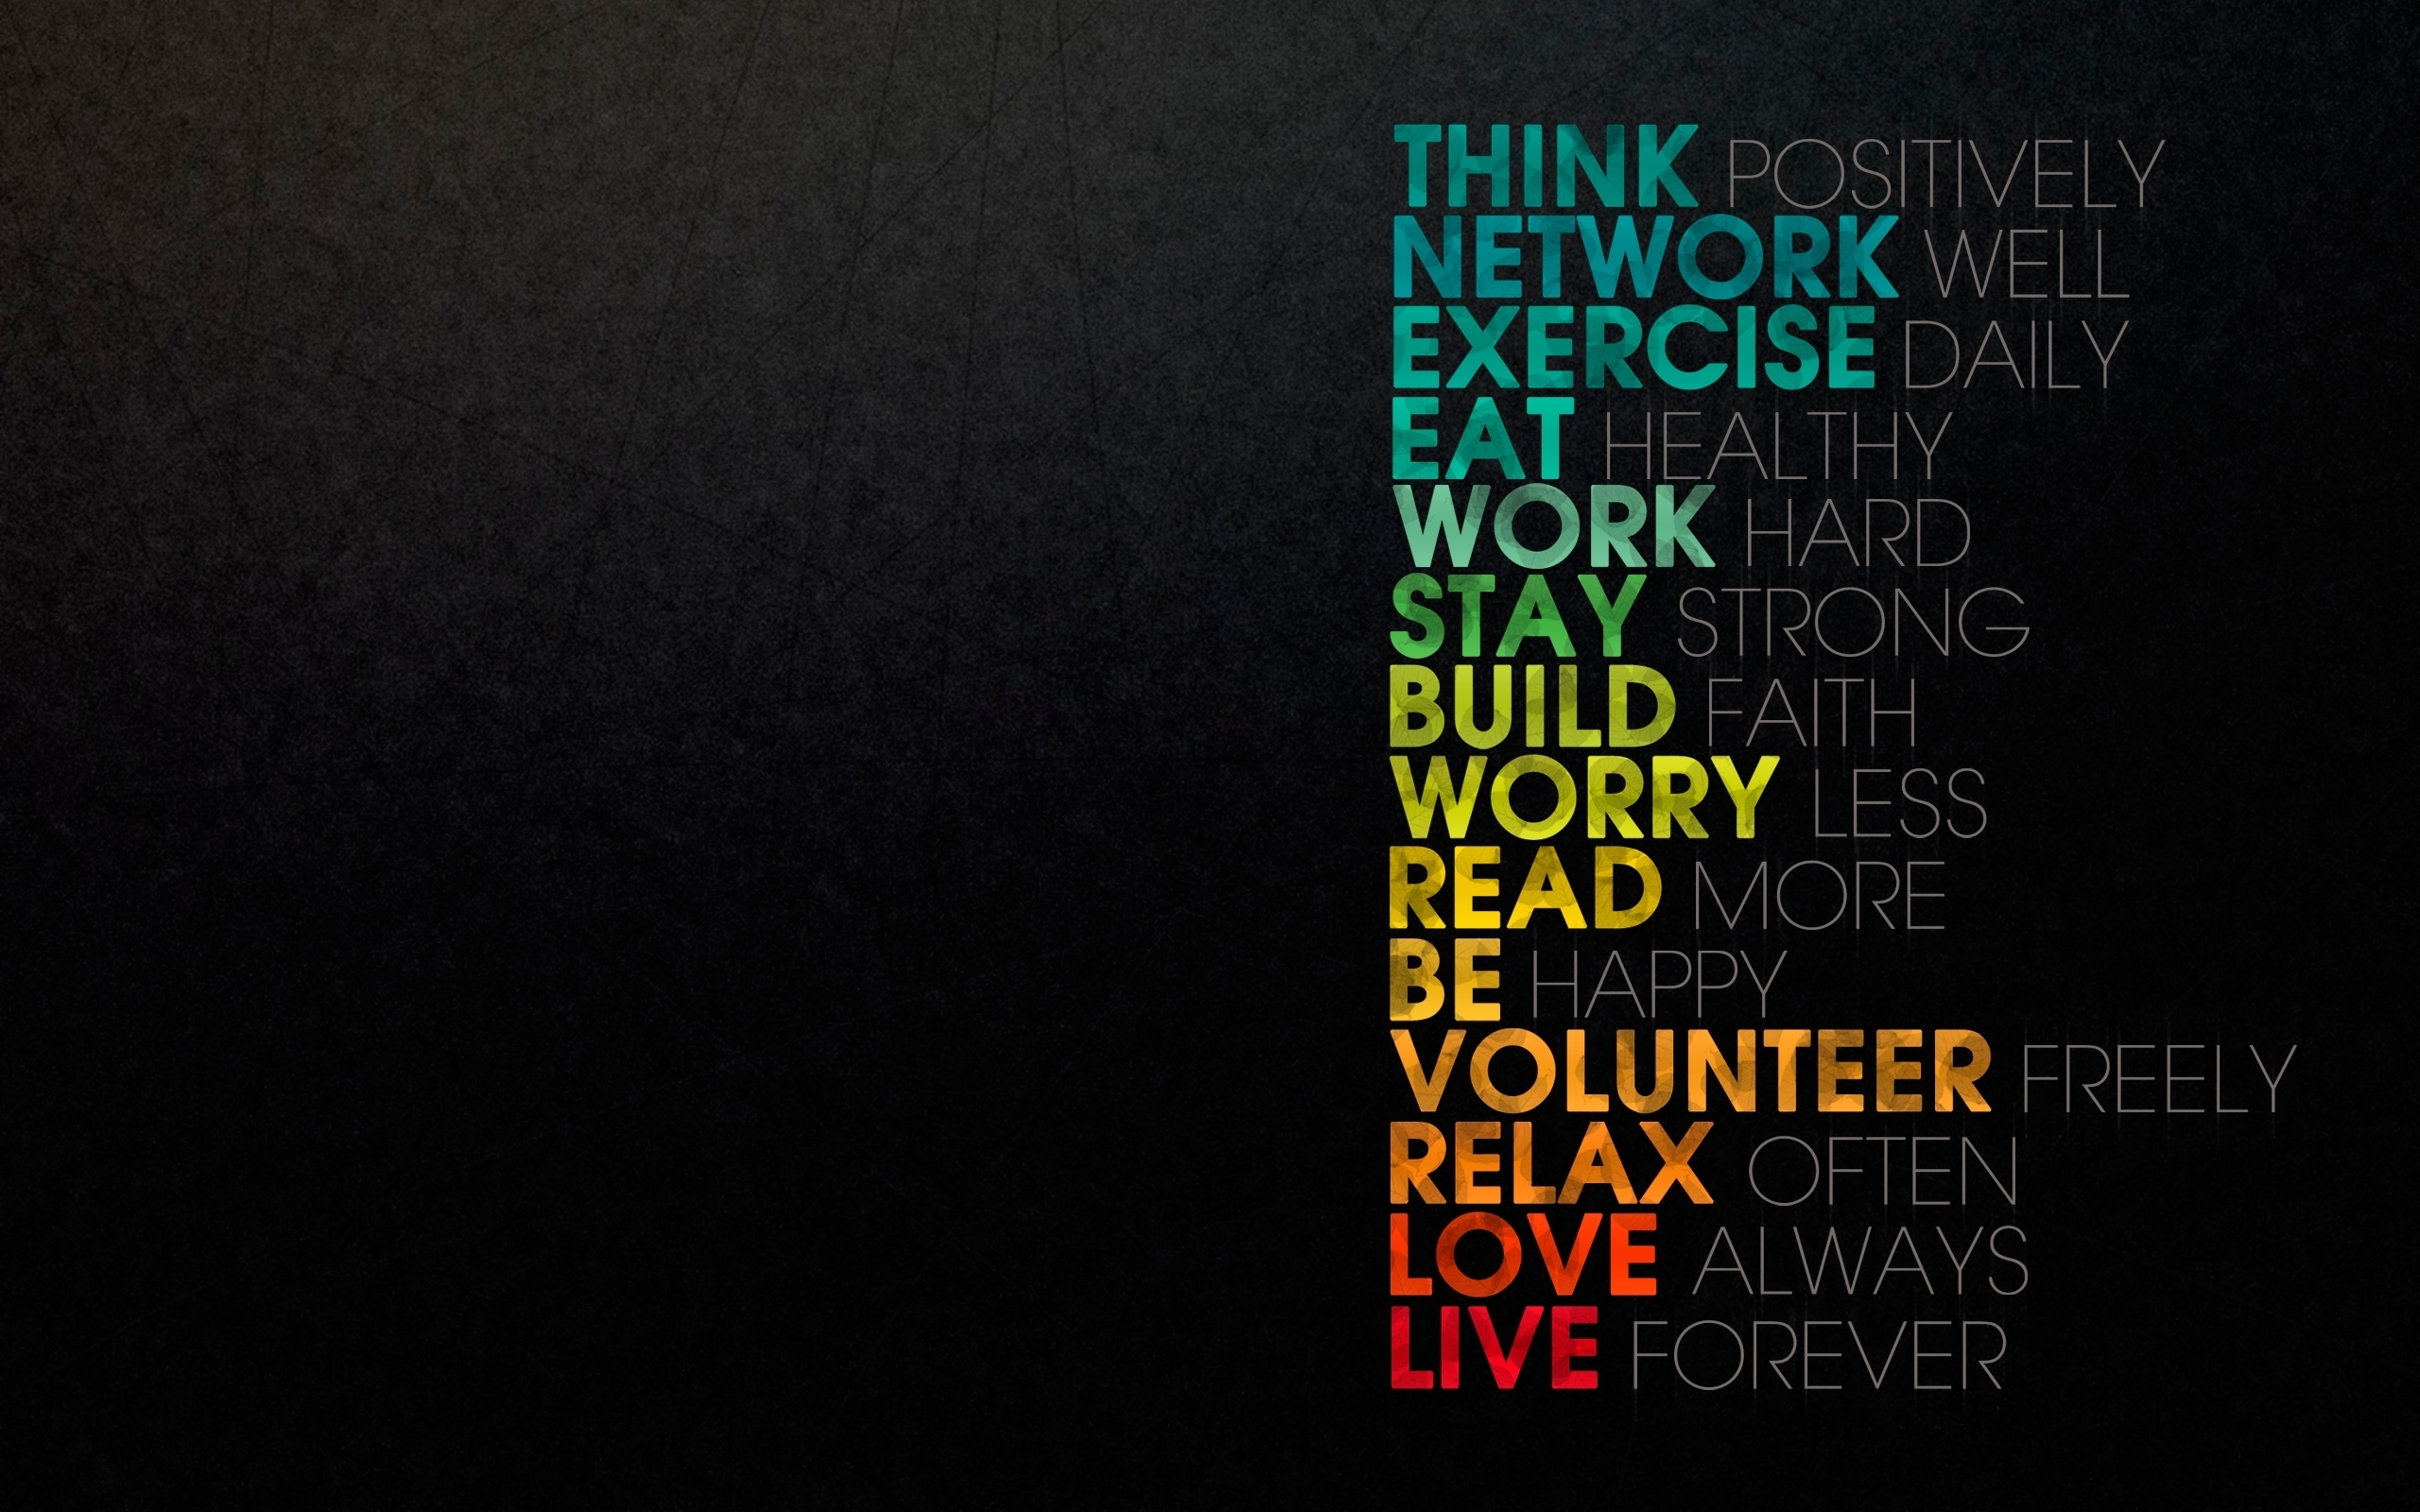 Motivational Quotes Image 4